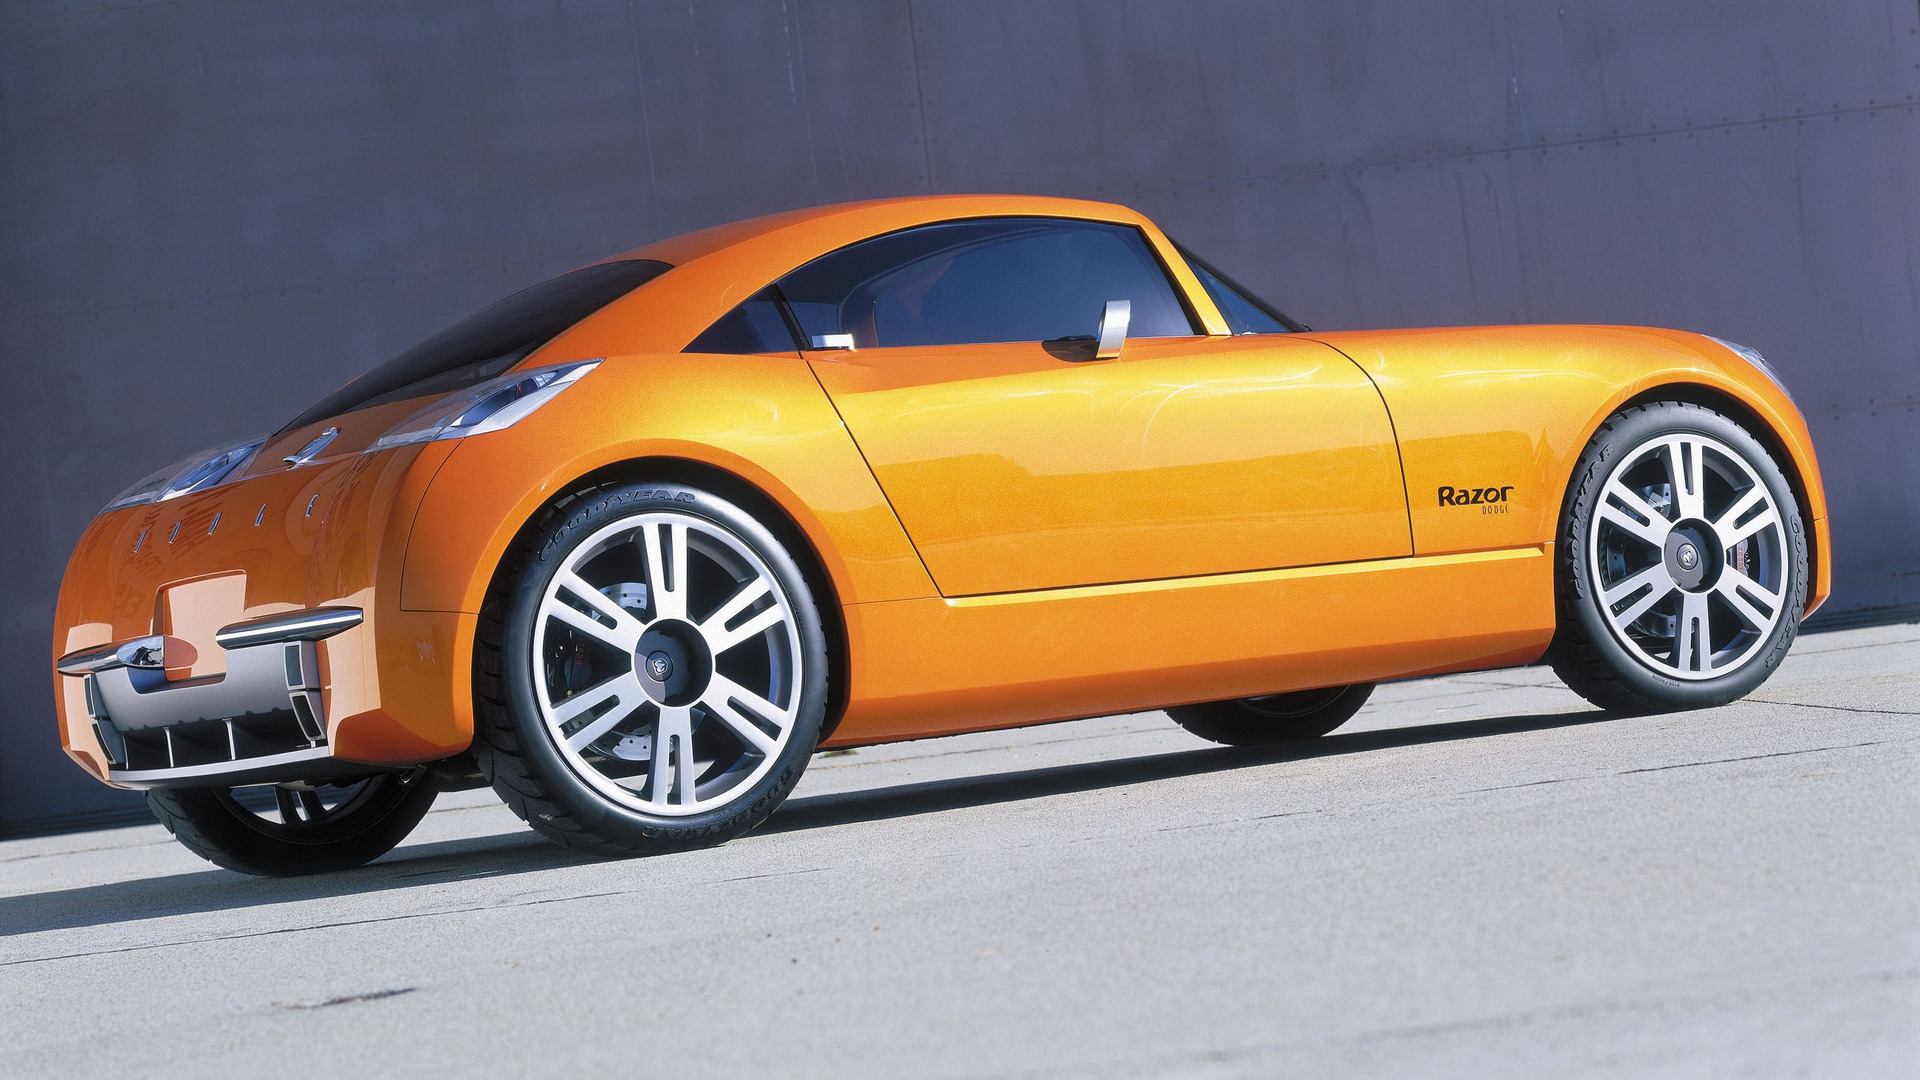 2002 Dodge Razor Concept Vehicle